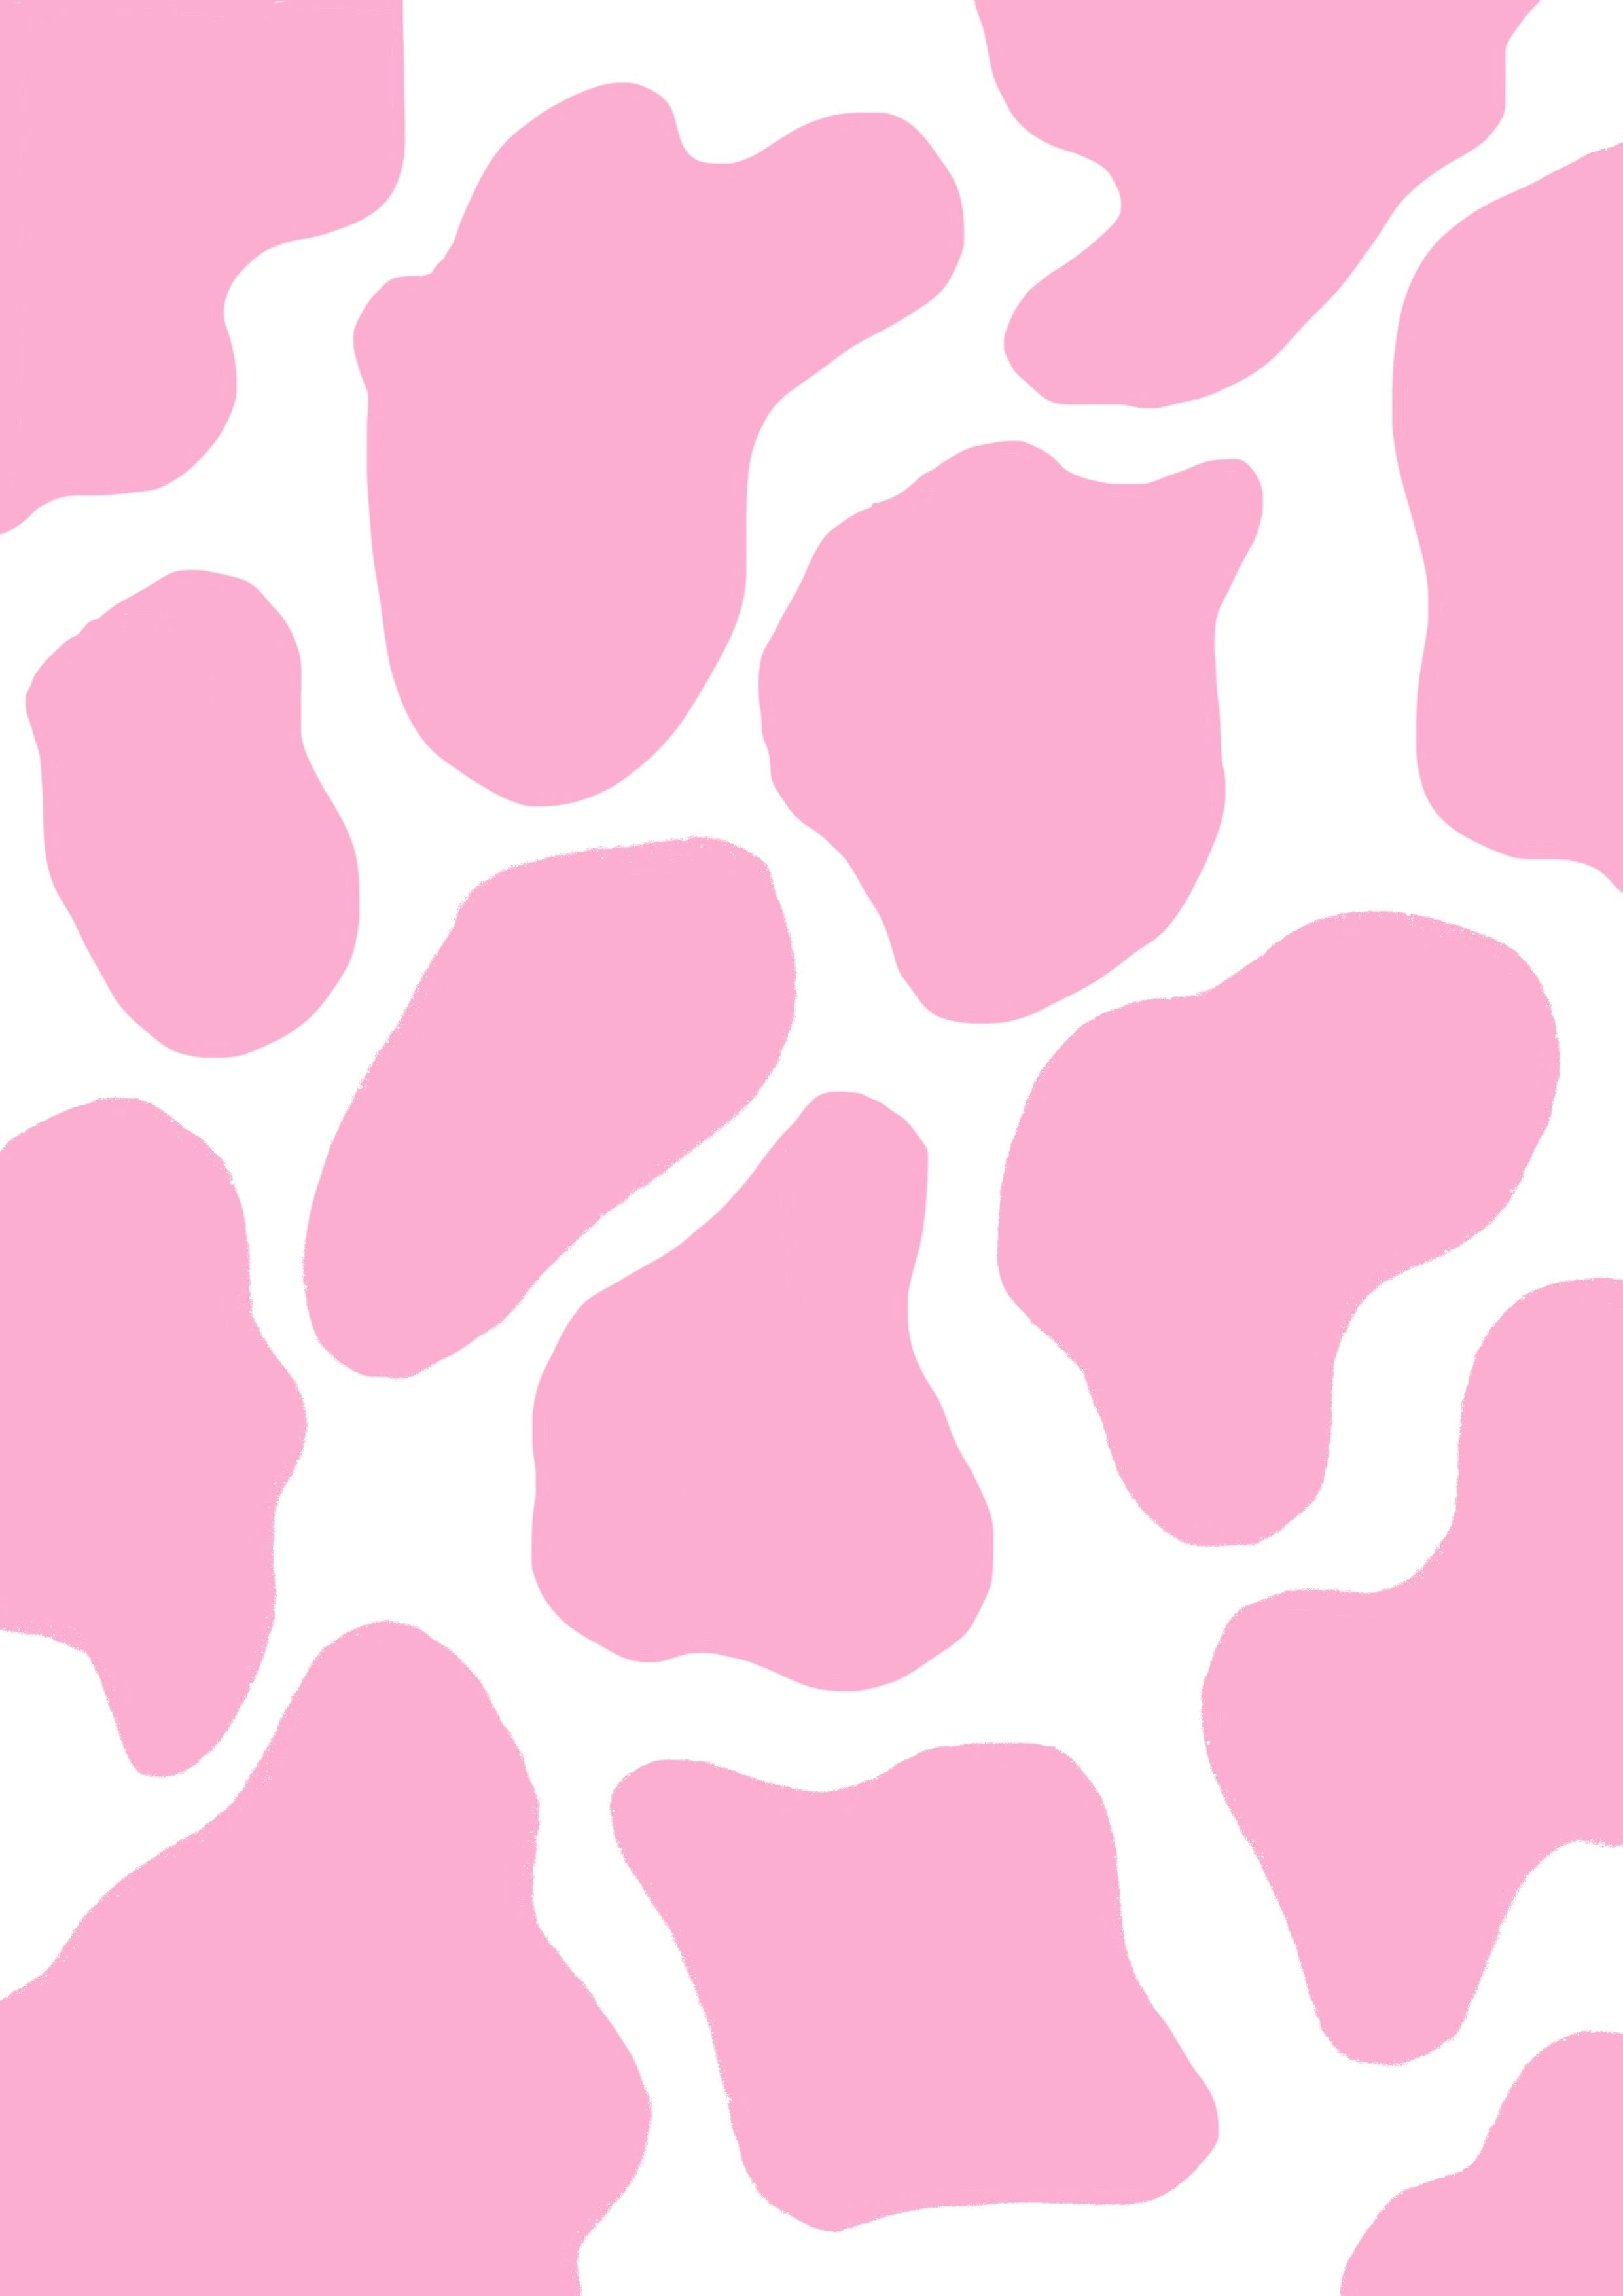 Fabgabcards On Instagram Colourful Cow Print With Clashing Colours Pink Don T Be A Mooooody Cow In 2020 Cow Print Wallpaper Photo Wall Collage Picture Collage Wall